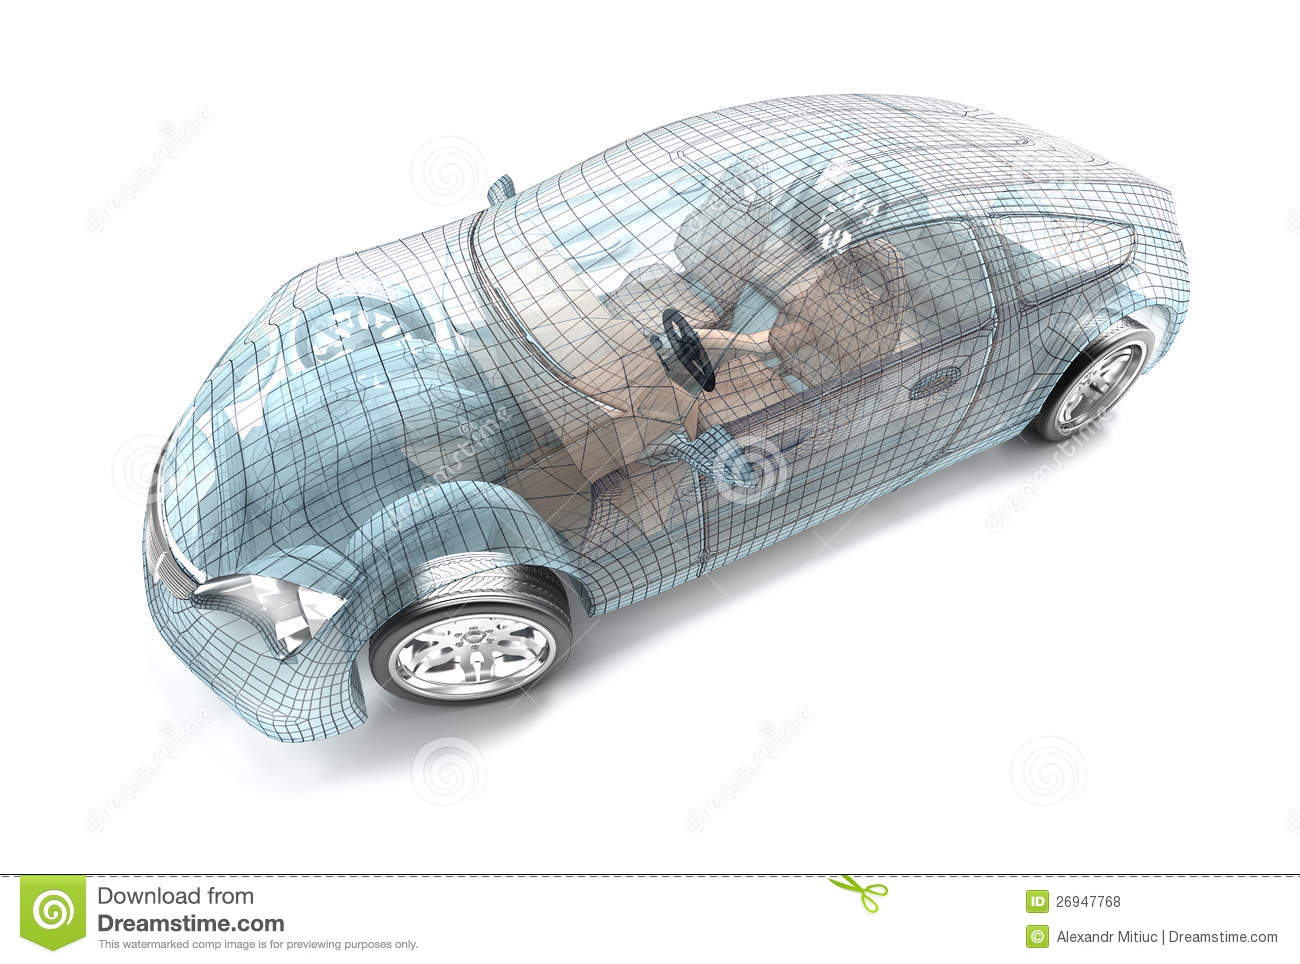 Car design, wire model